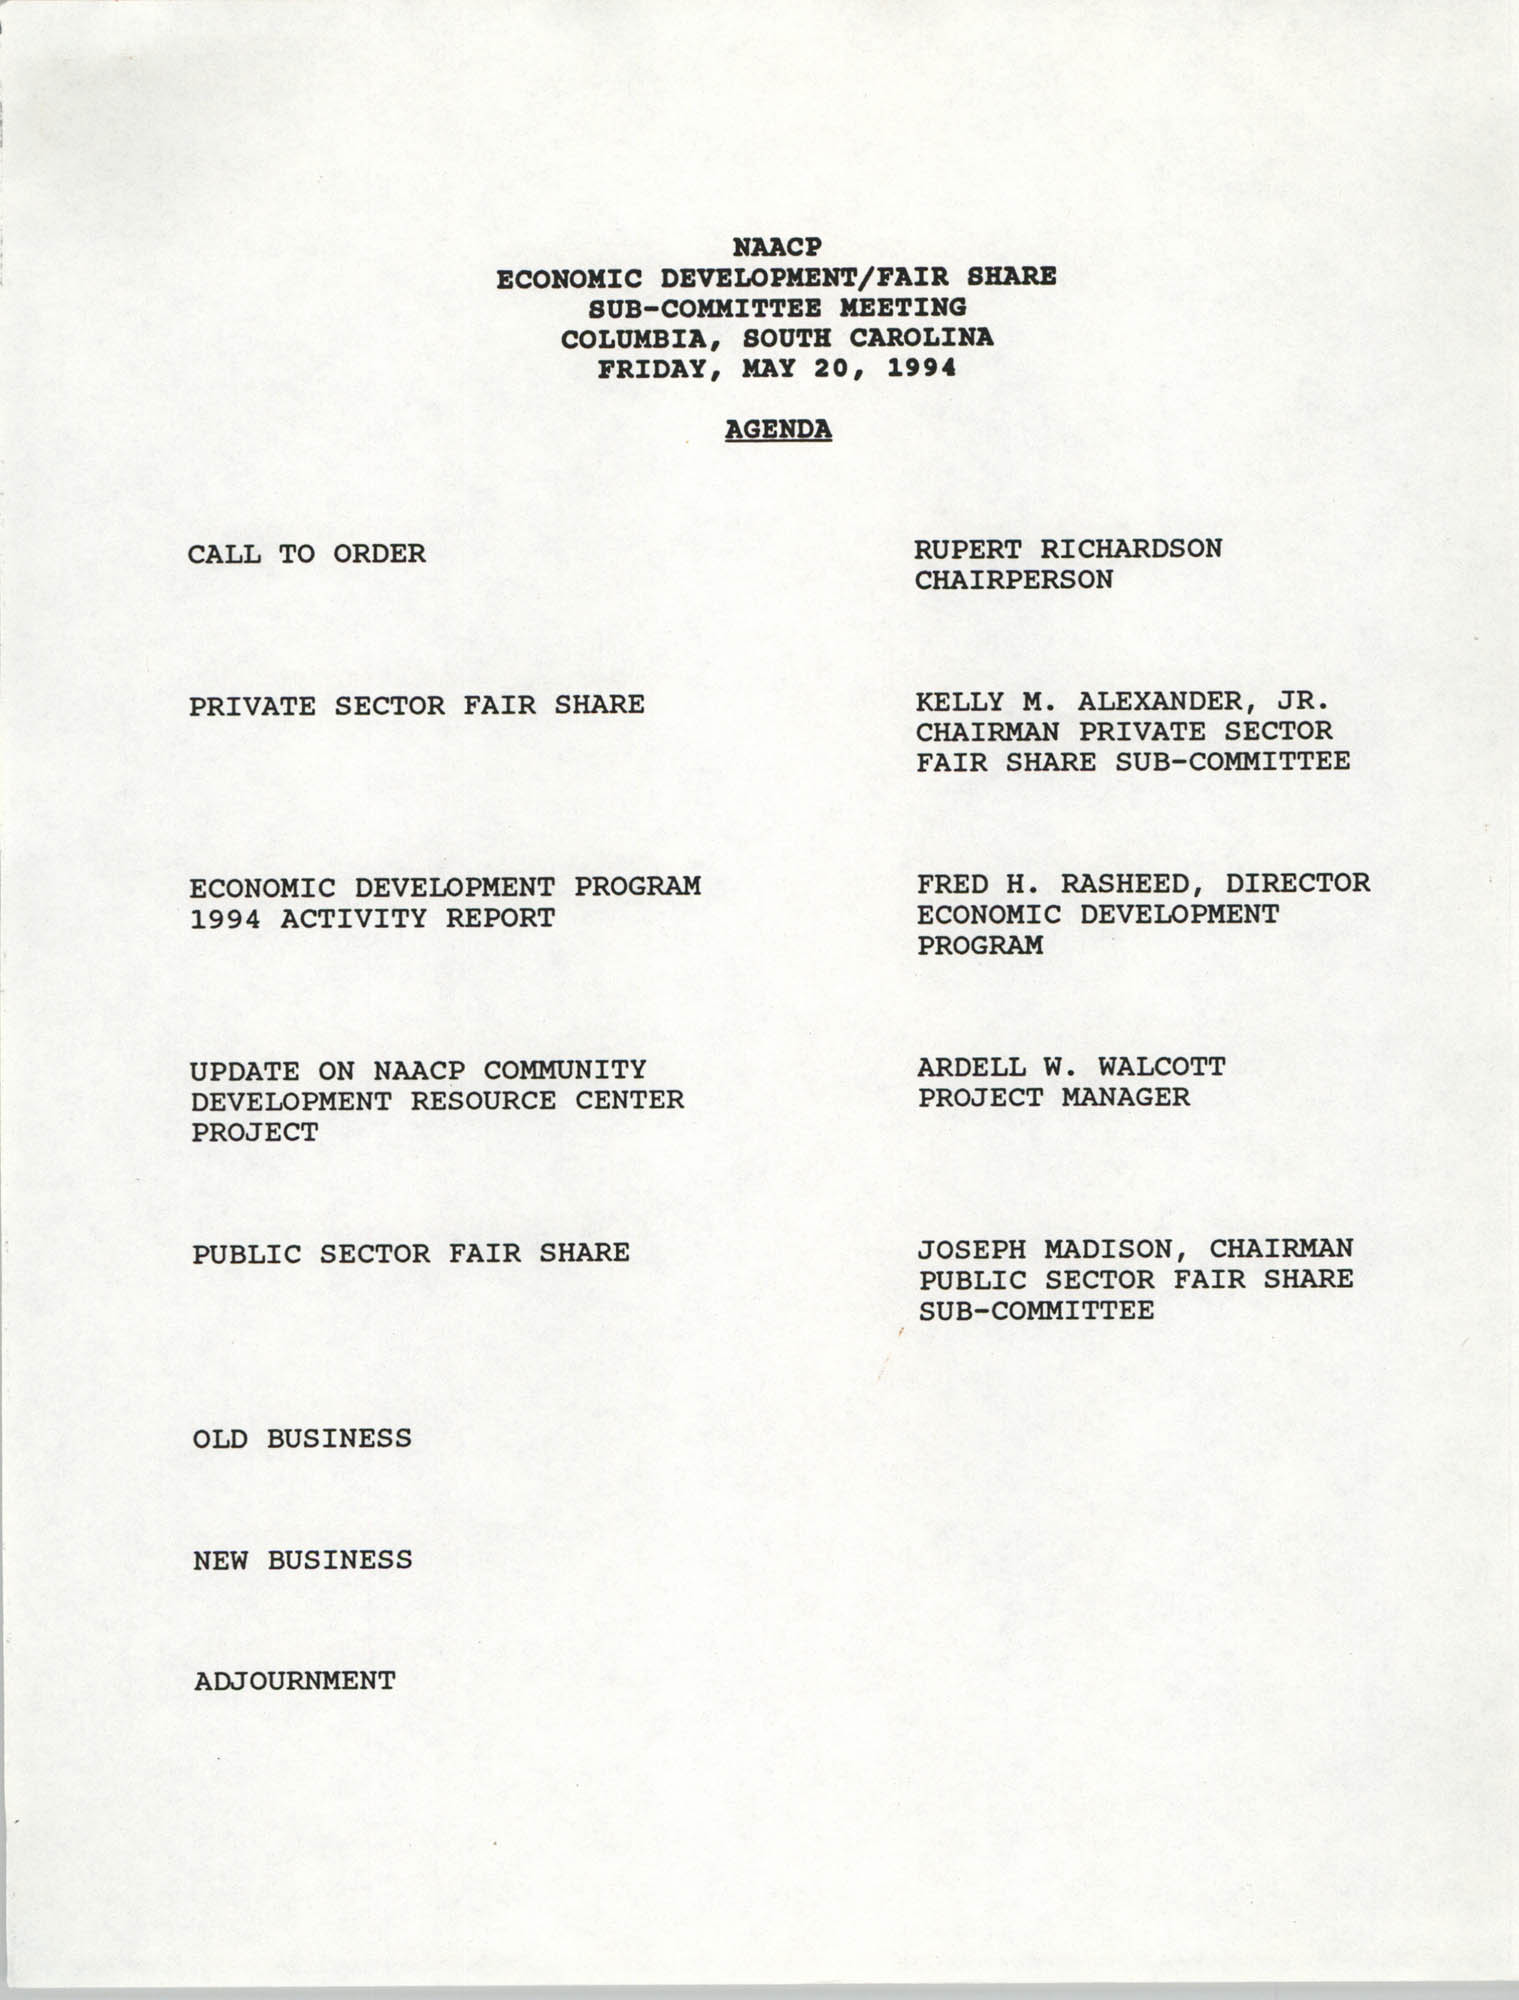 NAACP Economic Development/Fair Share Sub-Committee Meeting Agenda, May 20, 1994